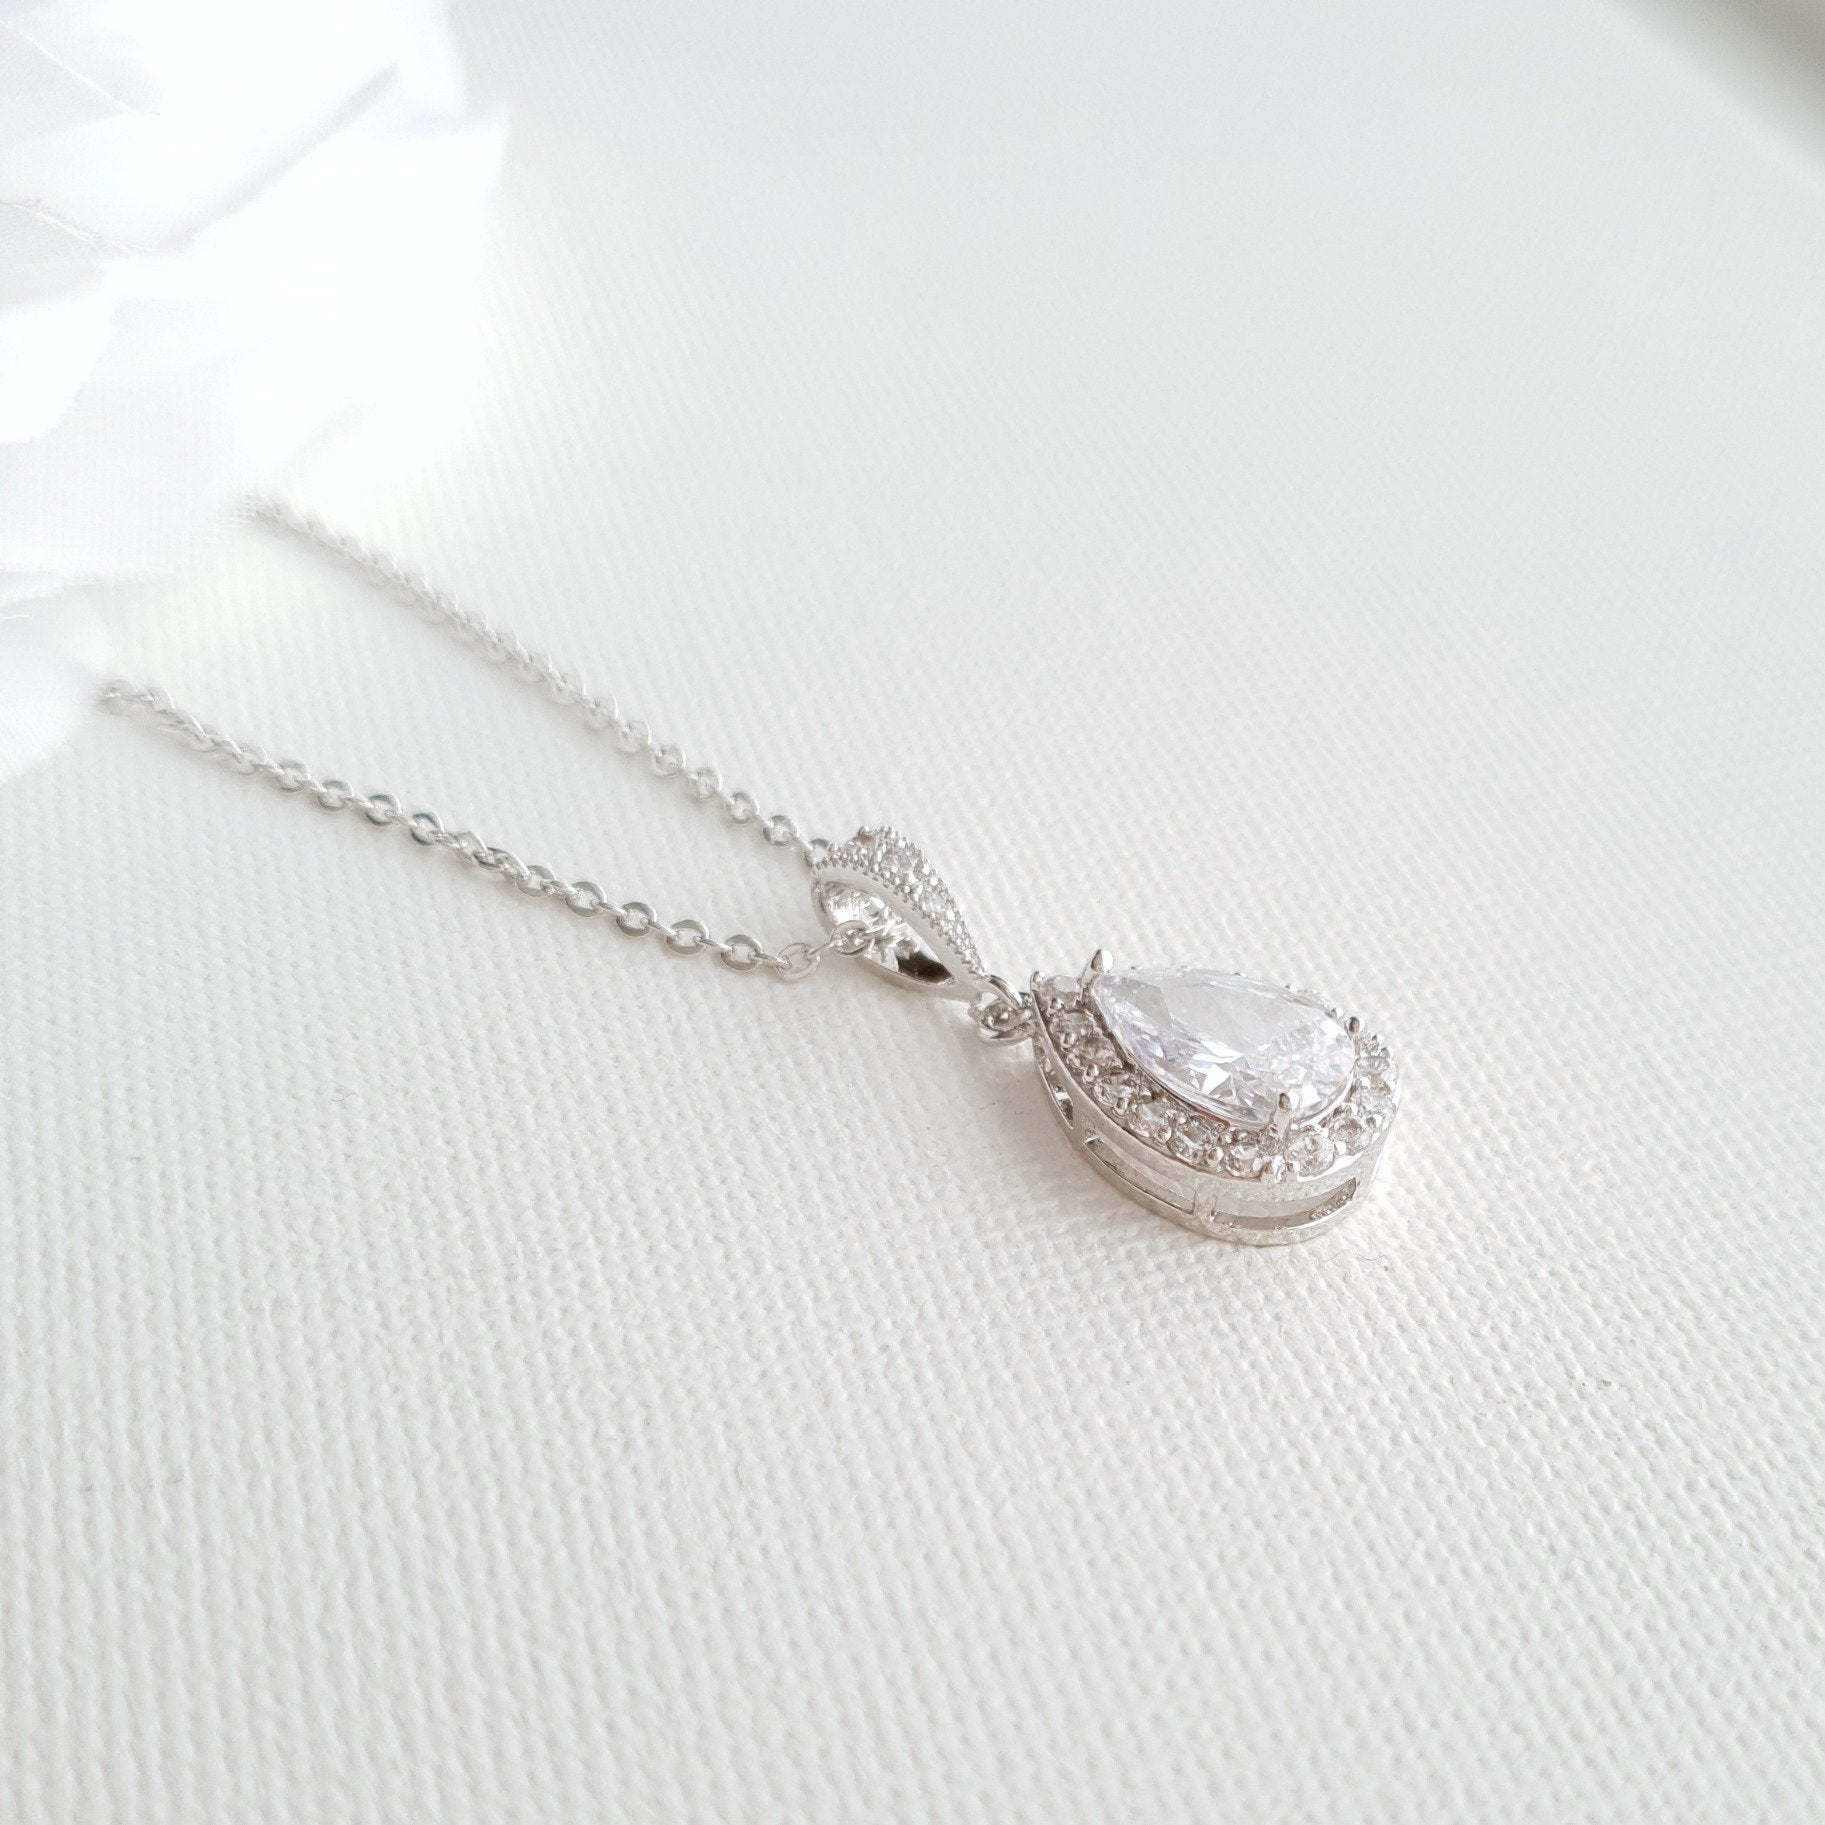 Teardrop Bridal & Bridesmaids Pendant Necklace-Emma - PoetryDesigns